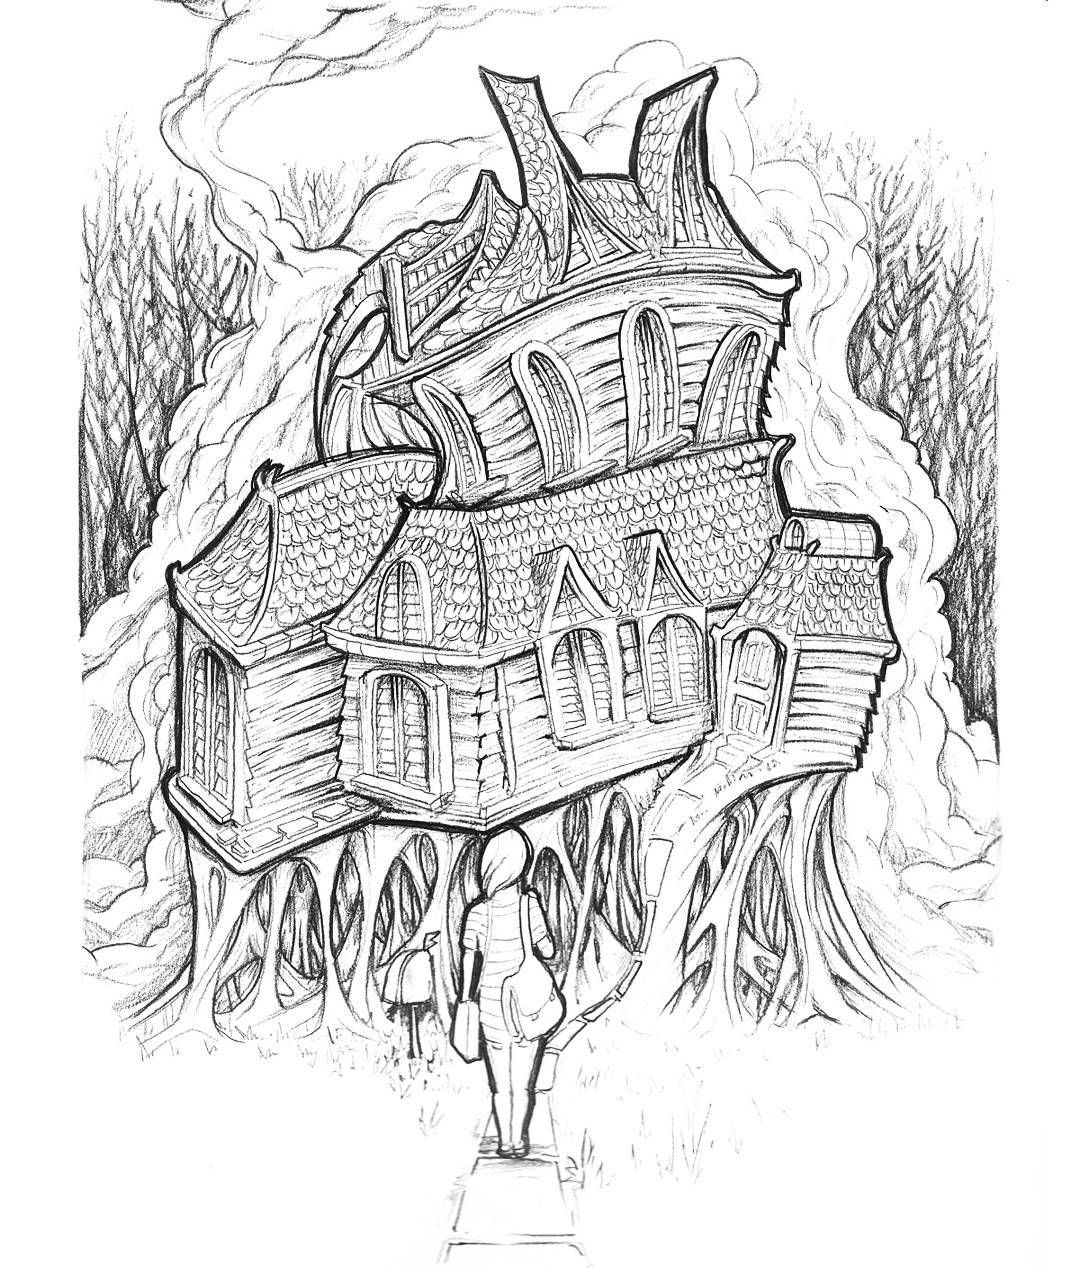 That feeling when you go to a new place. // #house // #creepy // #pencil // #draw // #drawing // #architecture // #building // #girl // #spooky // #sketchbook // #trippy // #surreal // #psychedelic // #forest //